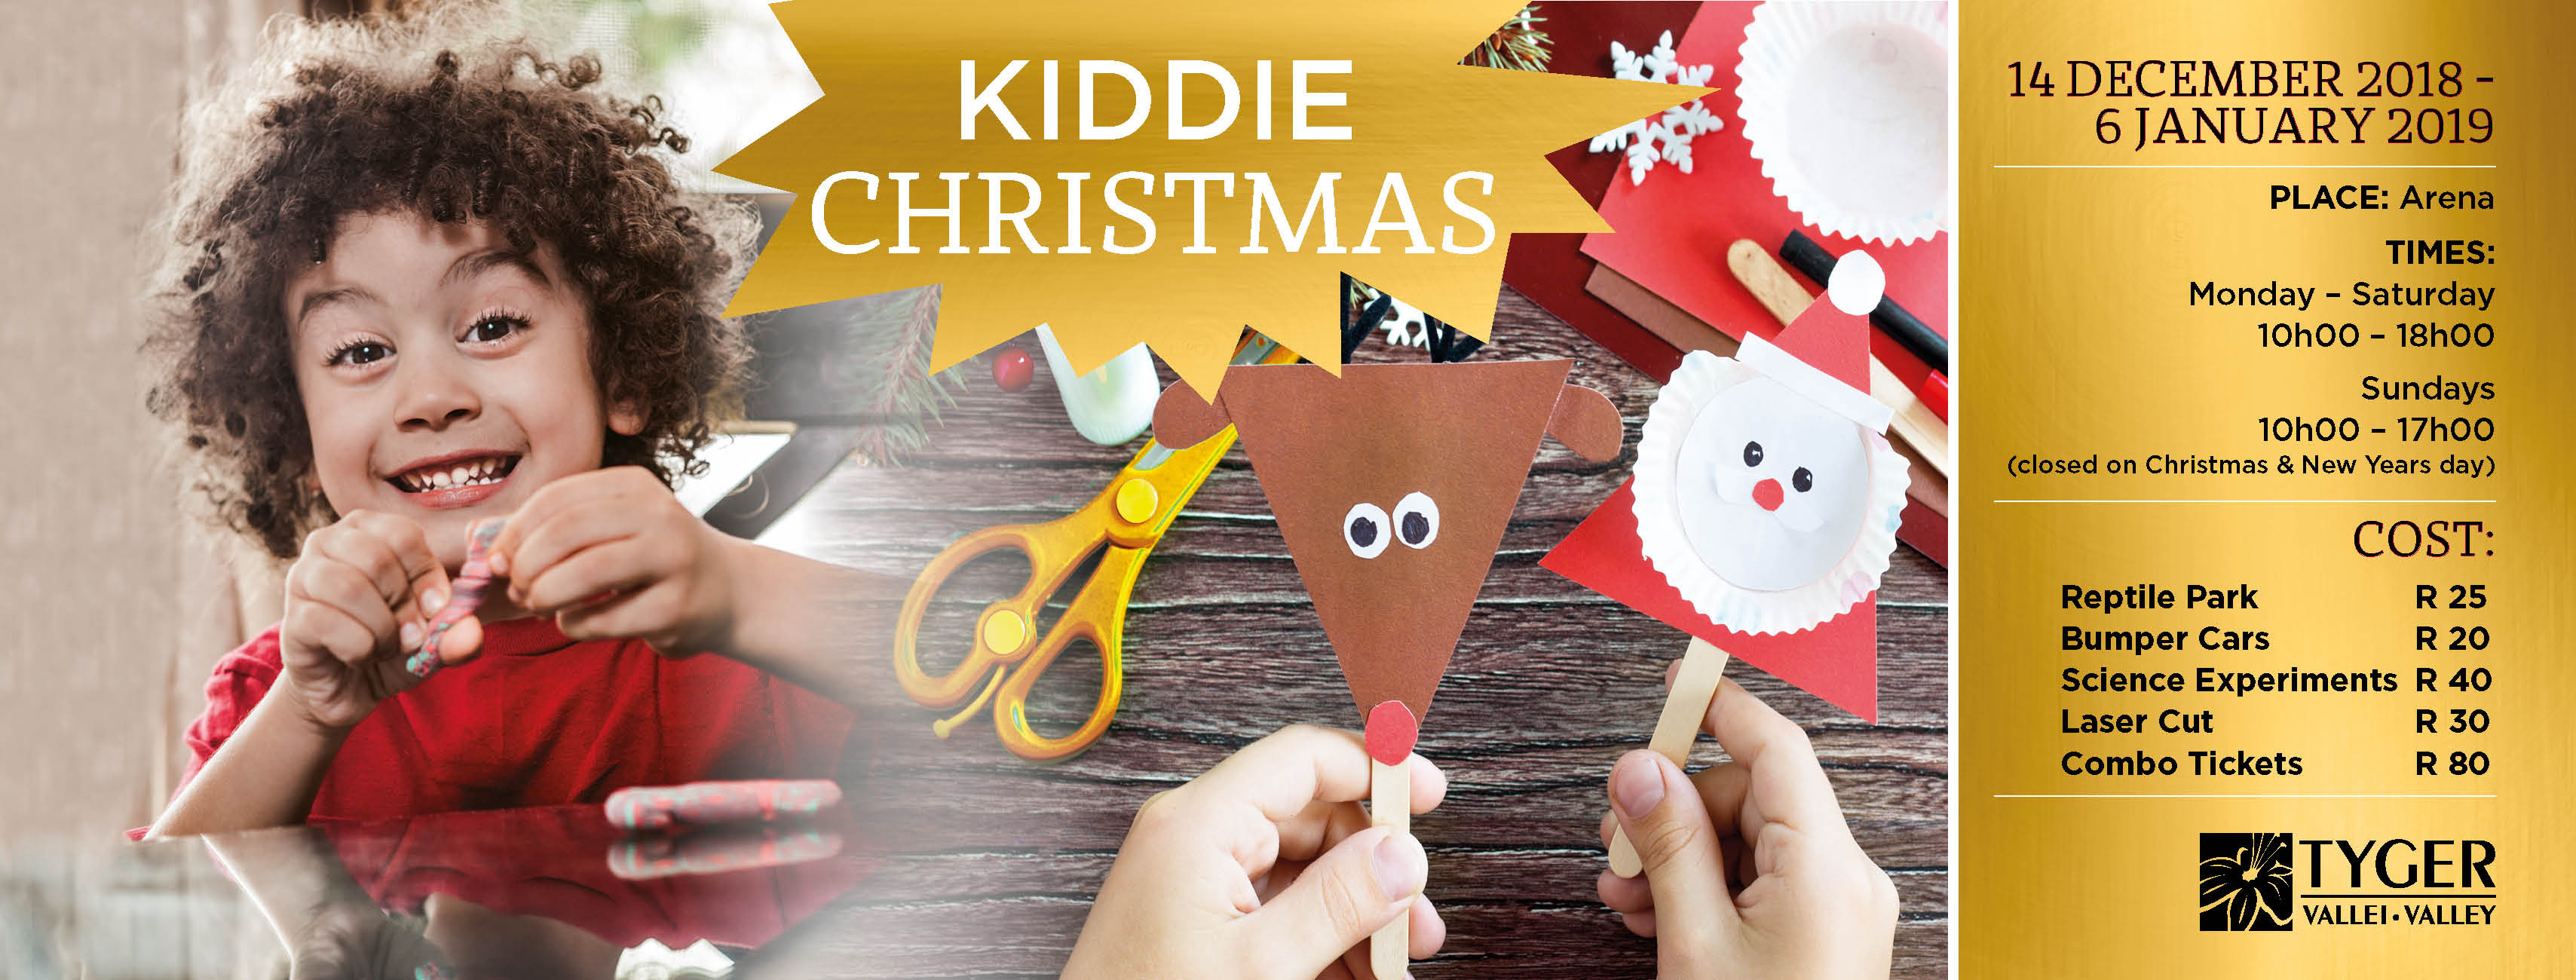 Kiddie Christmas